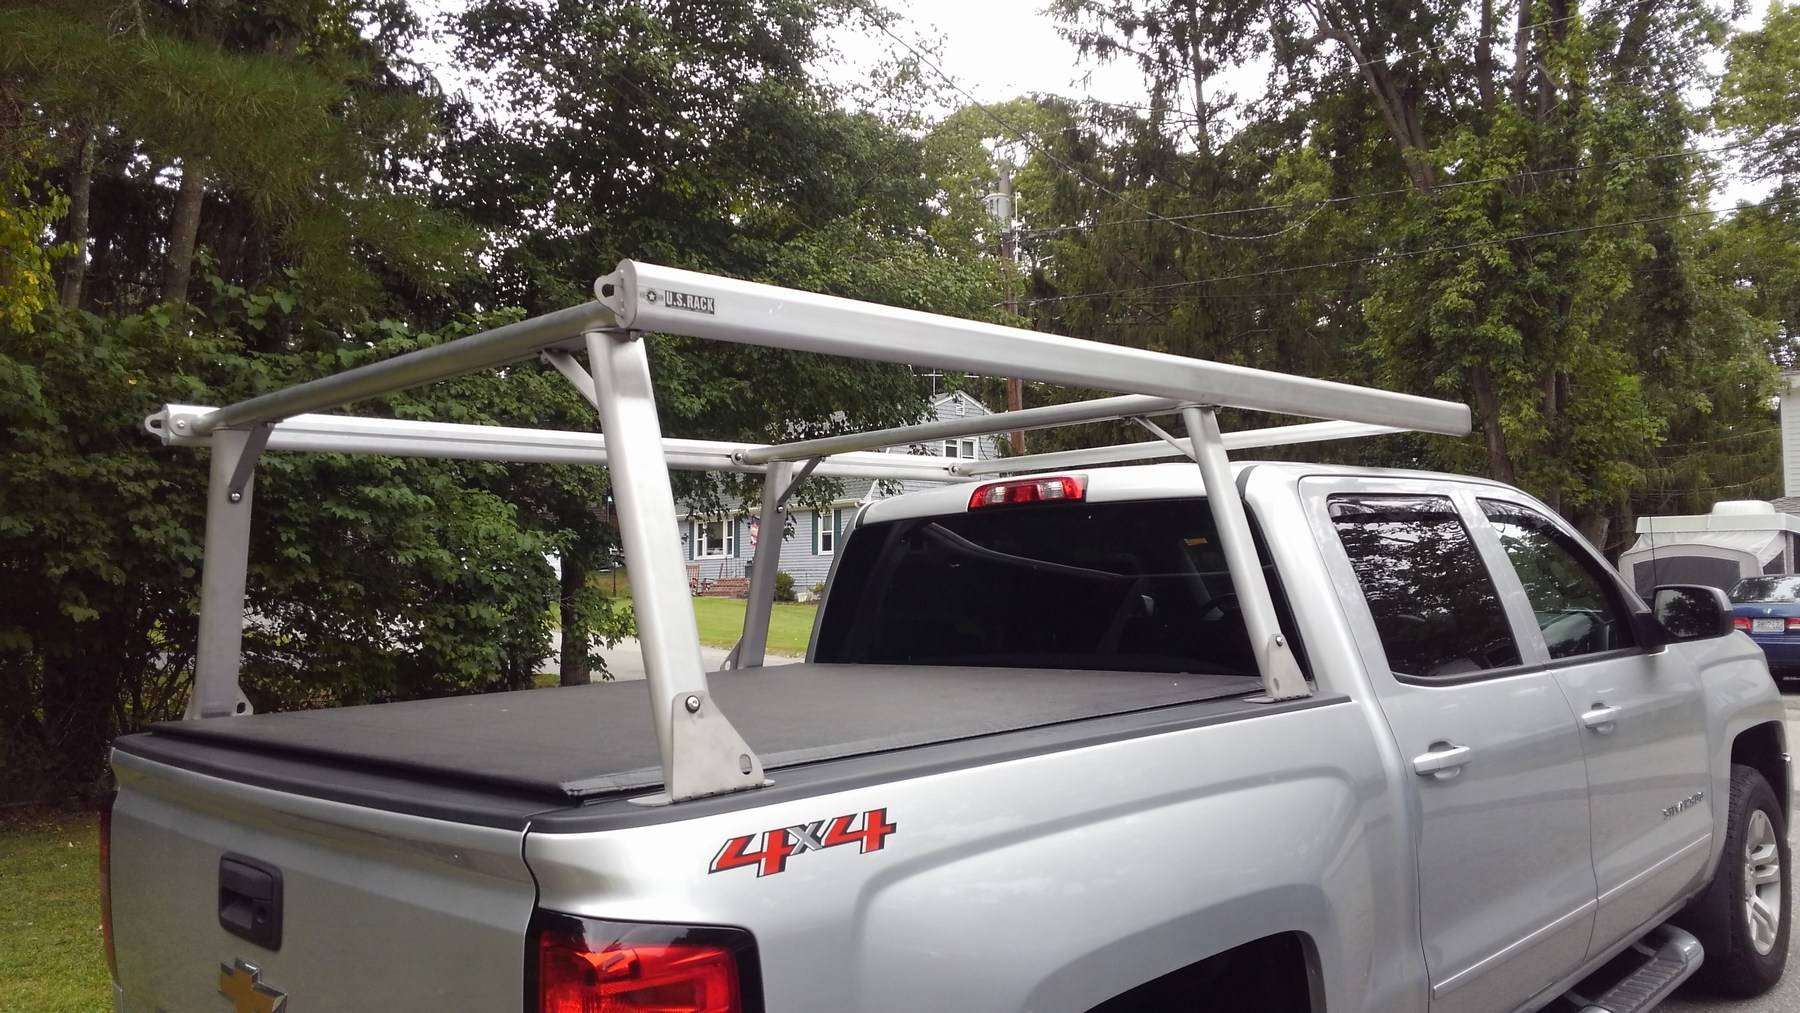 Toyota Tacoma Galleon Truck Rack for Cabs Under 24 Inches, Standard Legs, Brushed Frame With Bead Blasted Base - PN #82690210